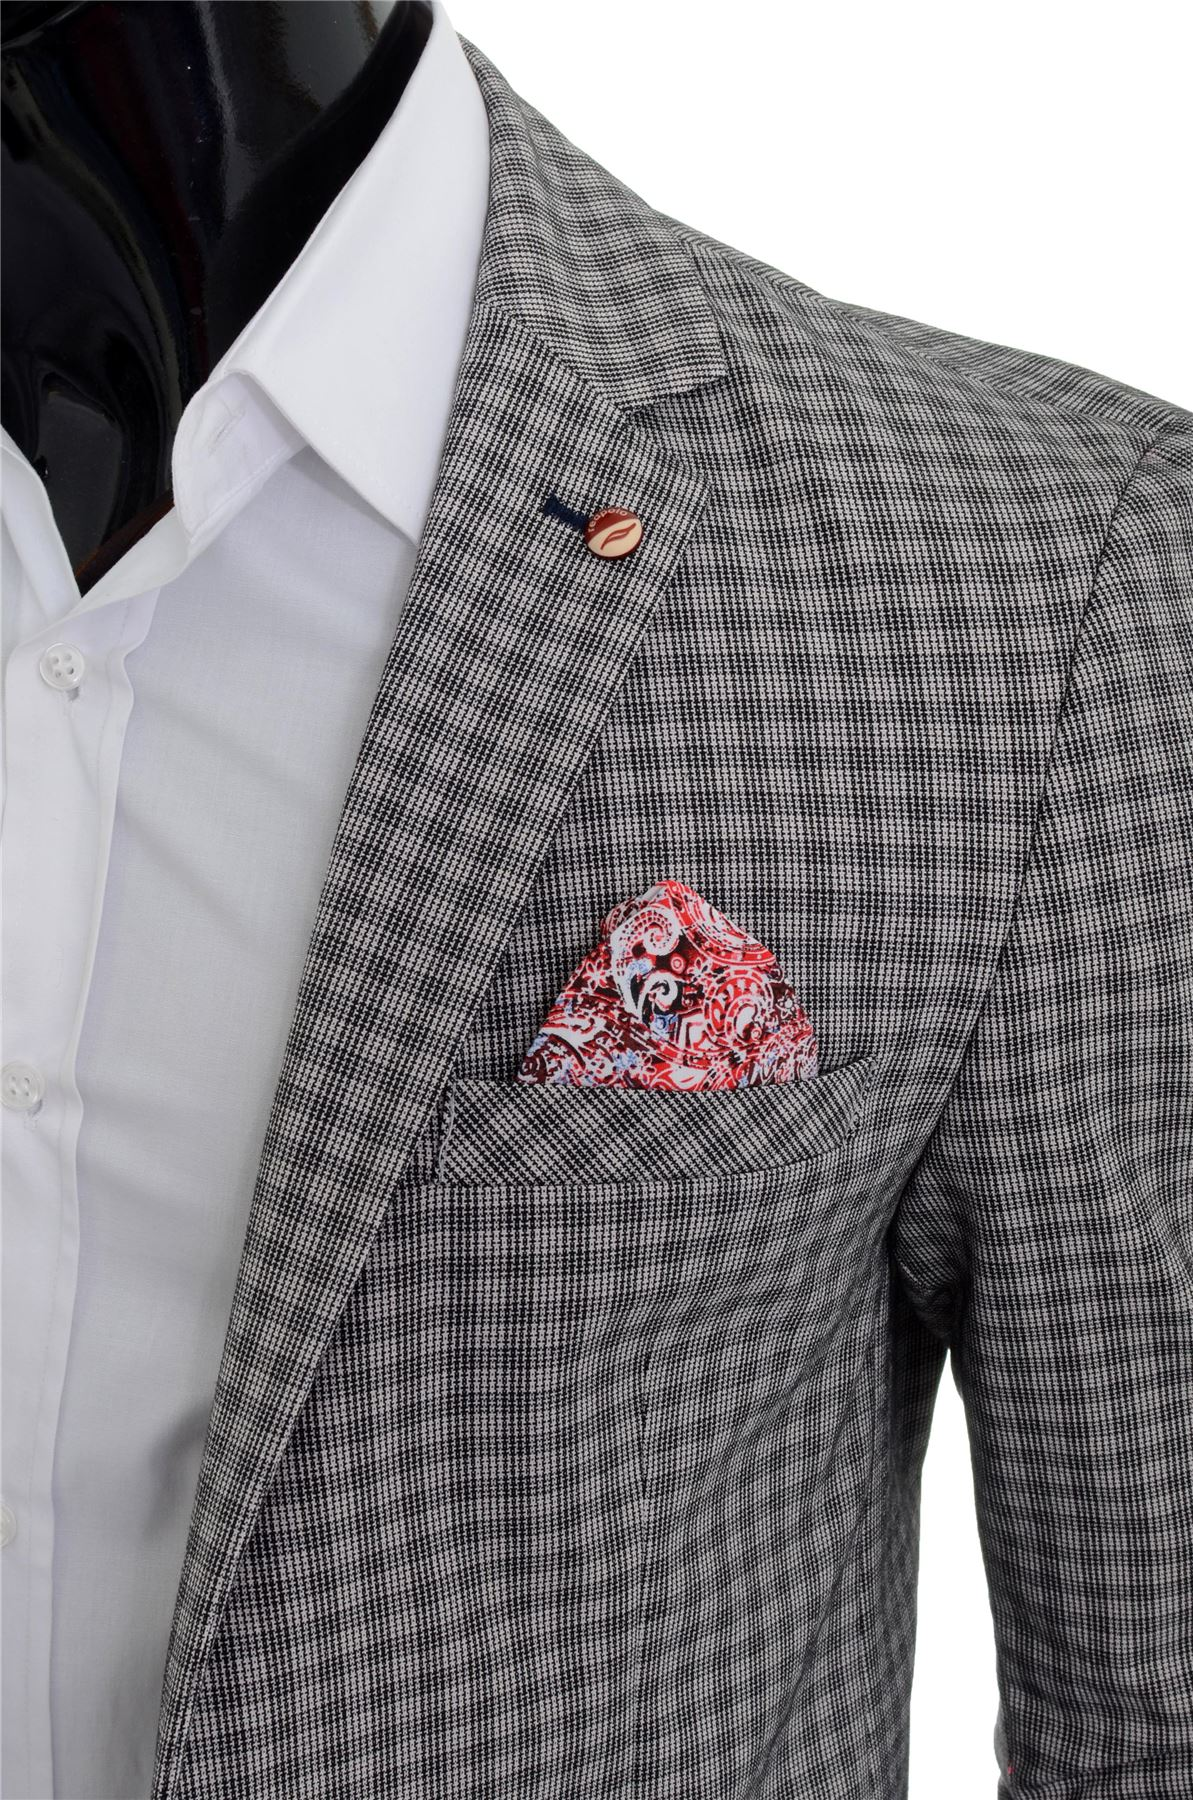 Mens-Checkered-Blazer-Jacket-Formal-Blue-Brown-Paisley-Finish-Cotton-Regular-Fit thumbnail 19